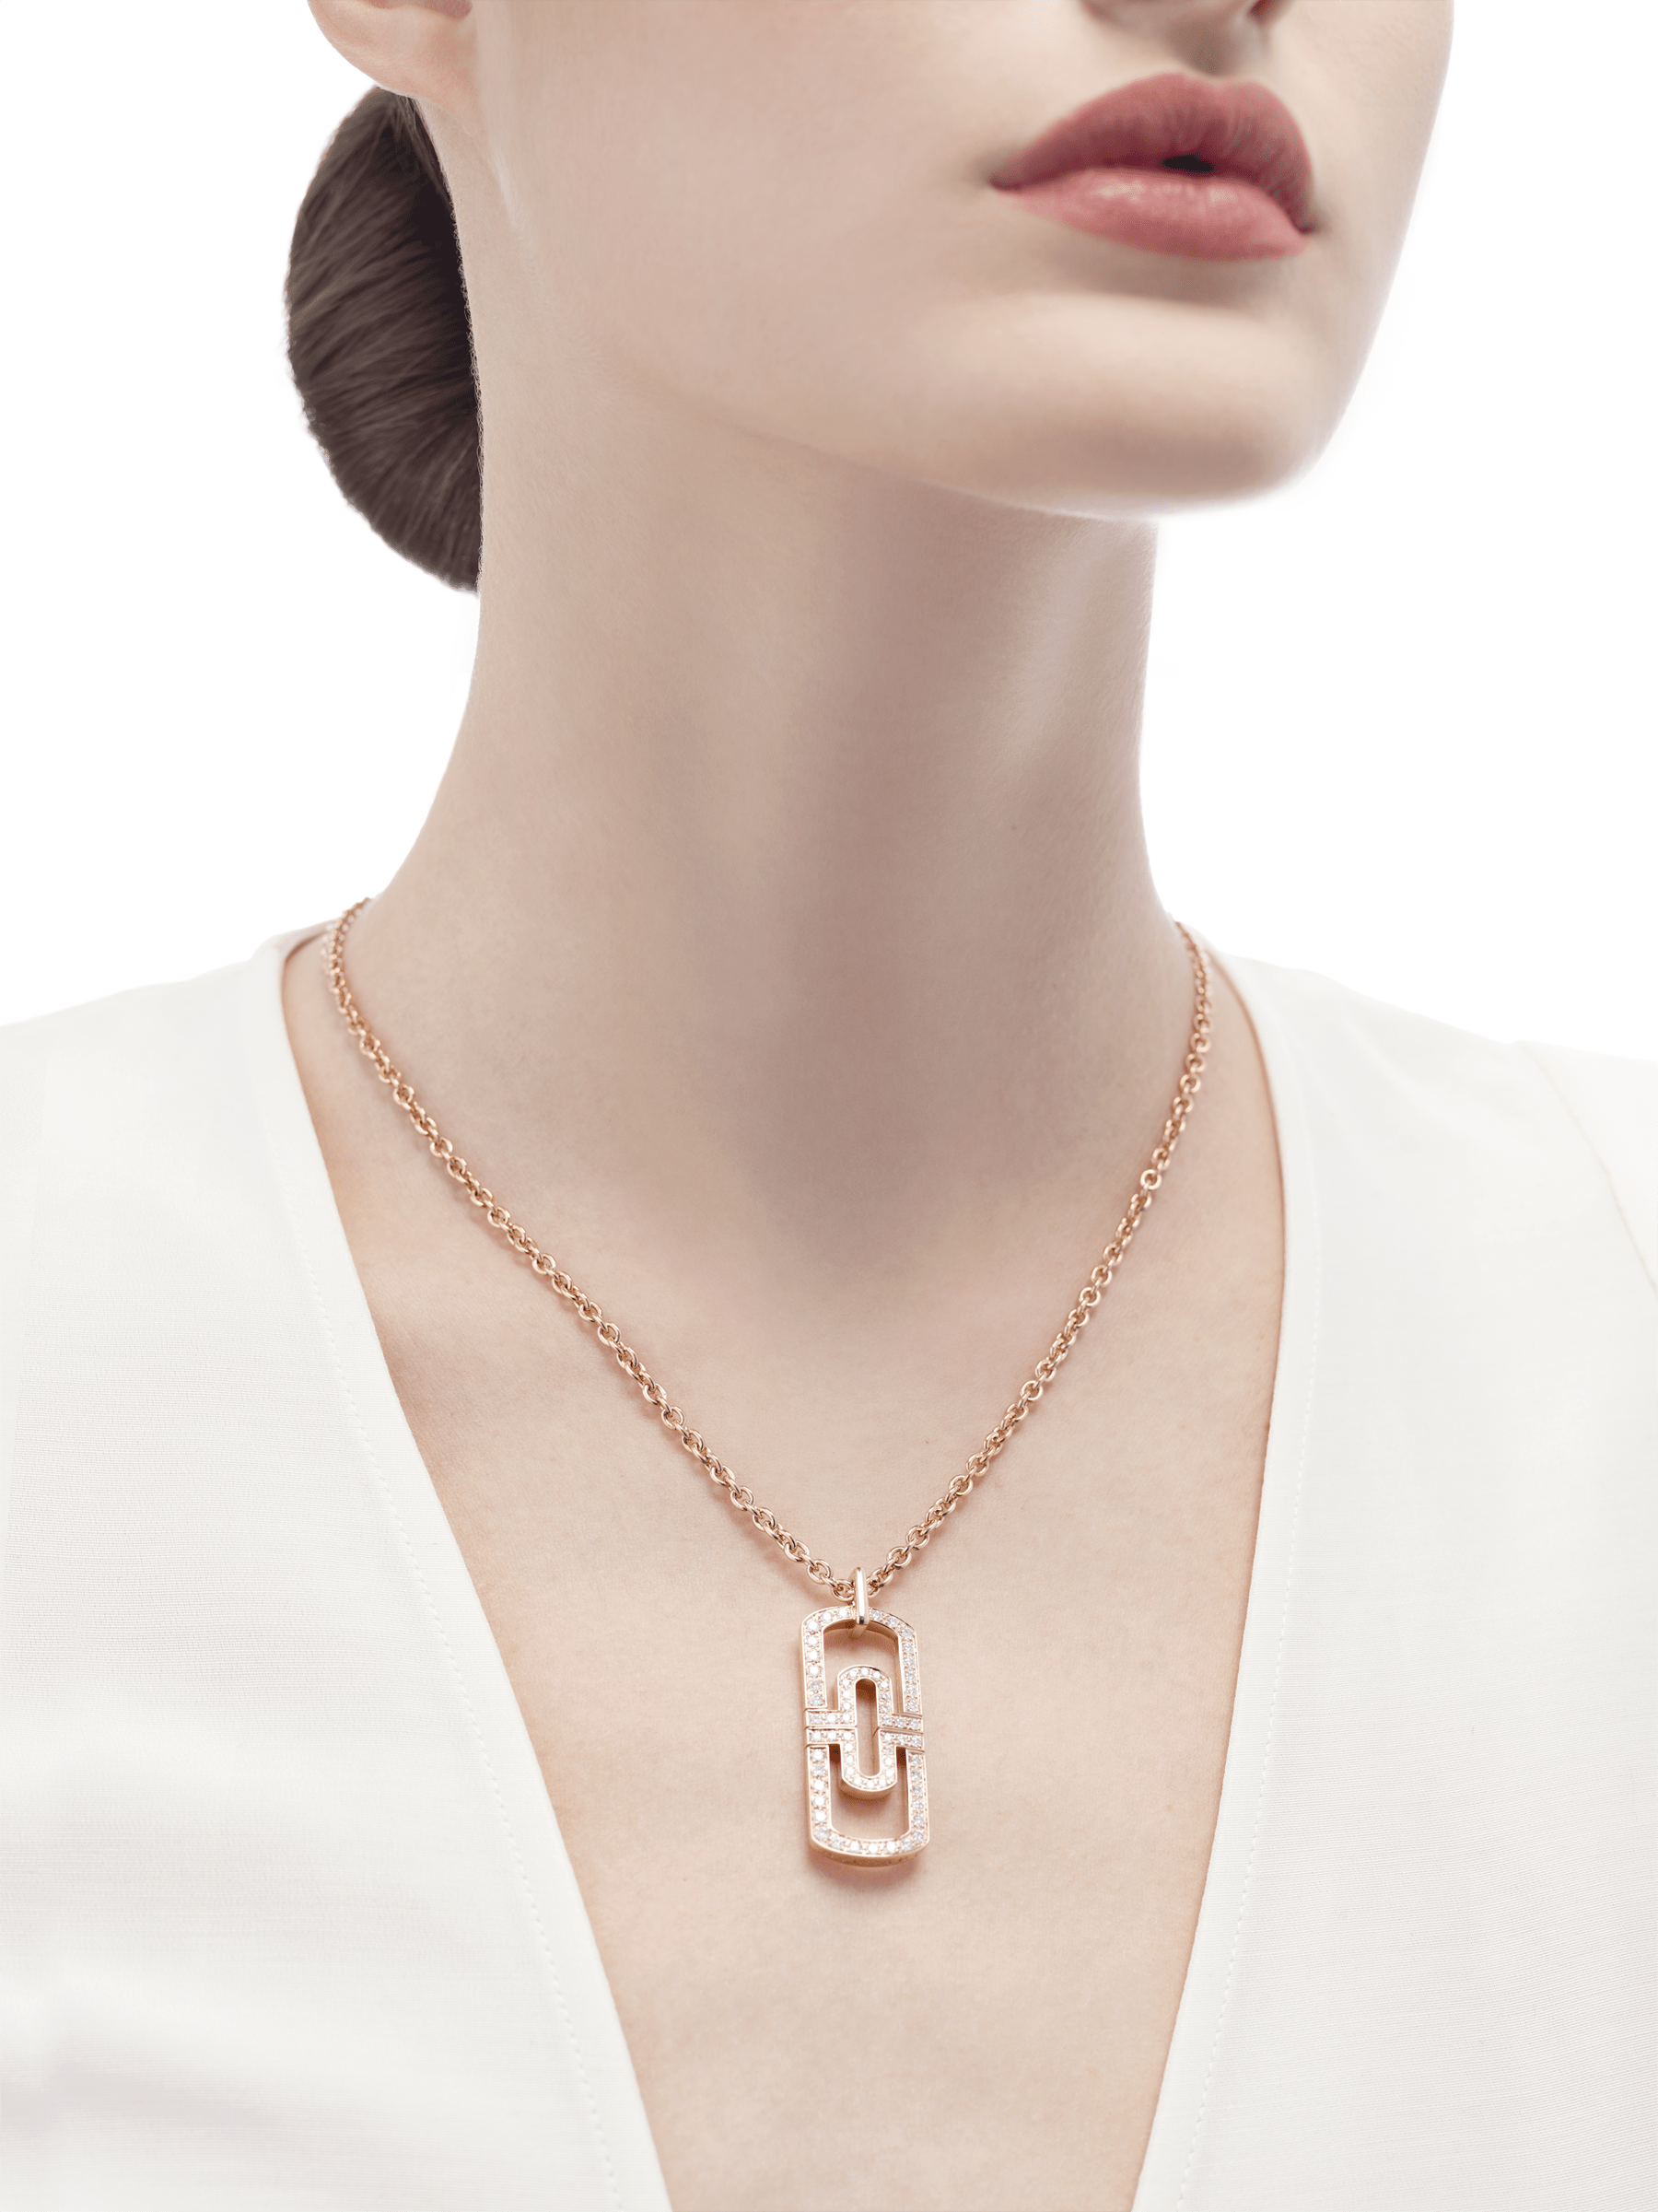 Parentesi necklace with 18 kt rose gold chain and 18 kt rose gold pendant set with full pavé diamonds 349184 image 4